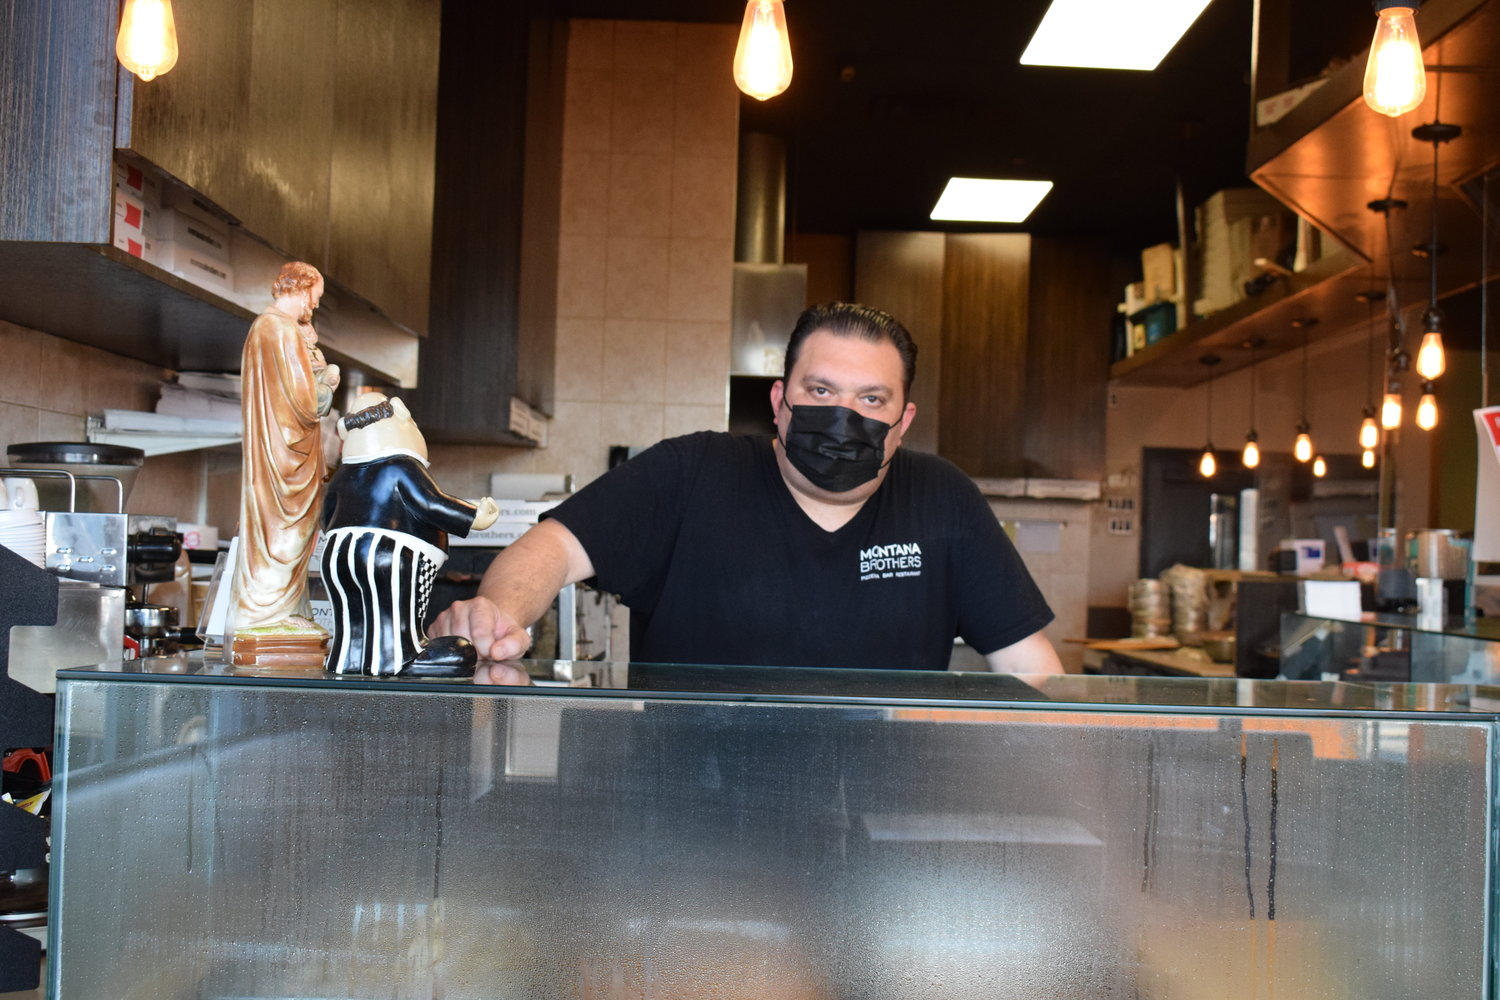 Frank Montana, of Montana Brothers Pizzeria and Catering, worked the counter. The restaurant has dealt with limited-capacity seating and increased expenses because of the coronavirus pandemic.